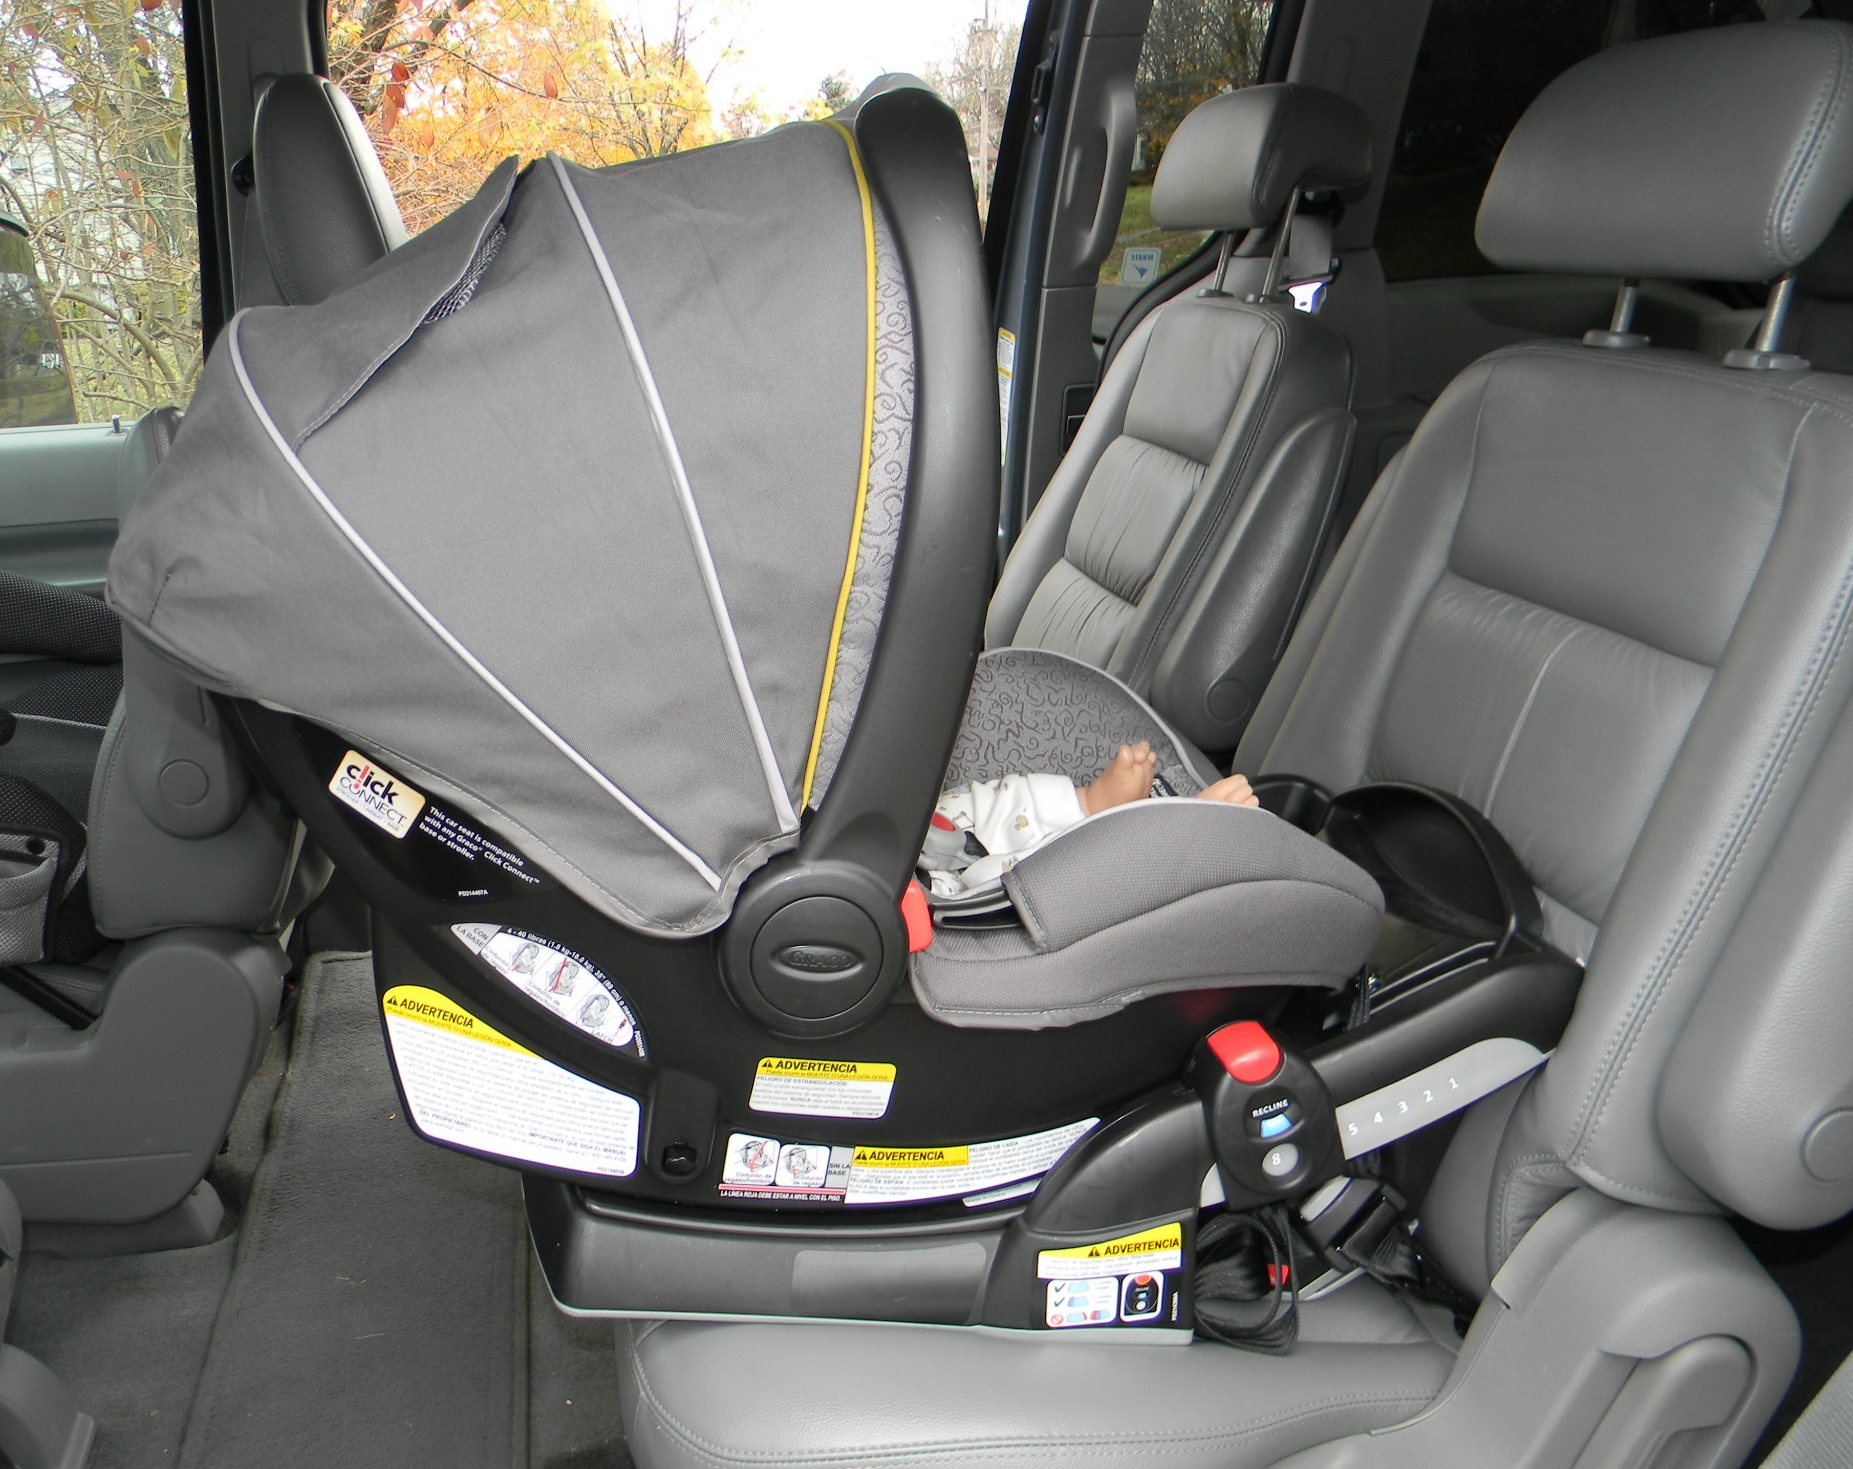 The Graco SnugRide 40 Click Connect Infant Carseat